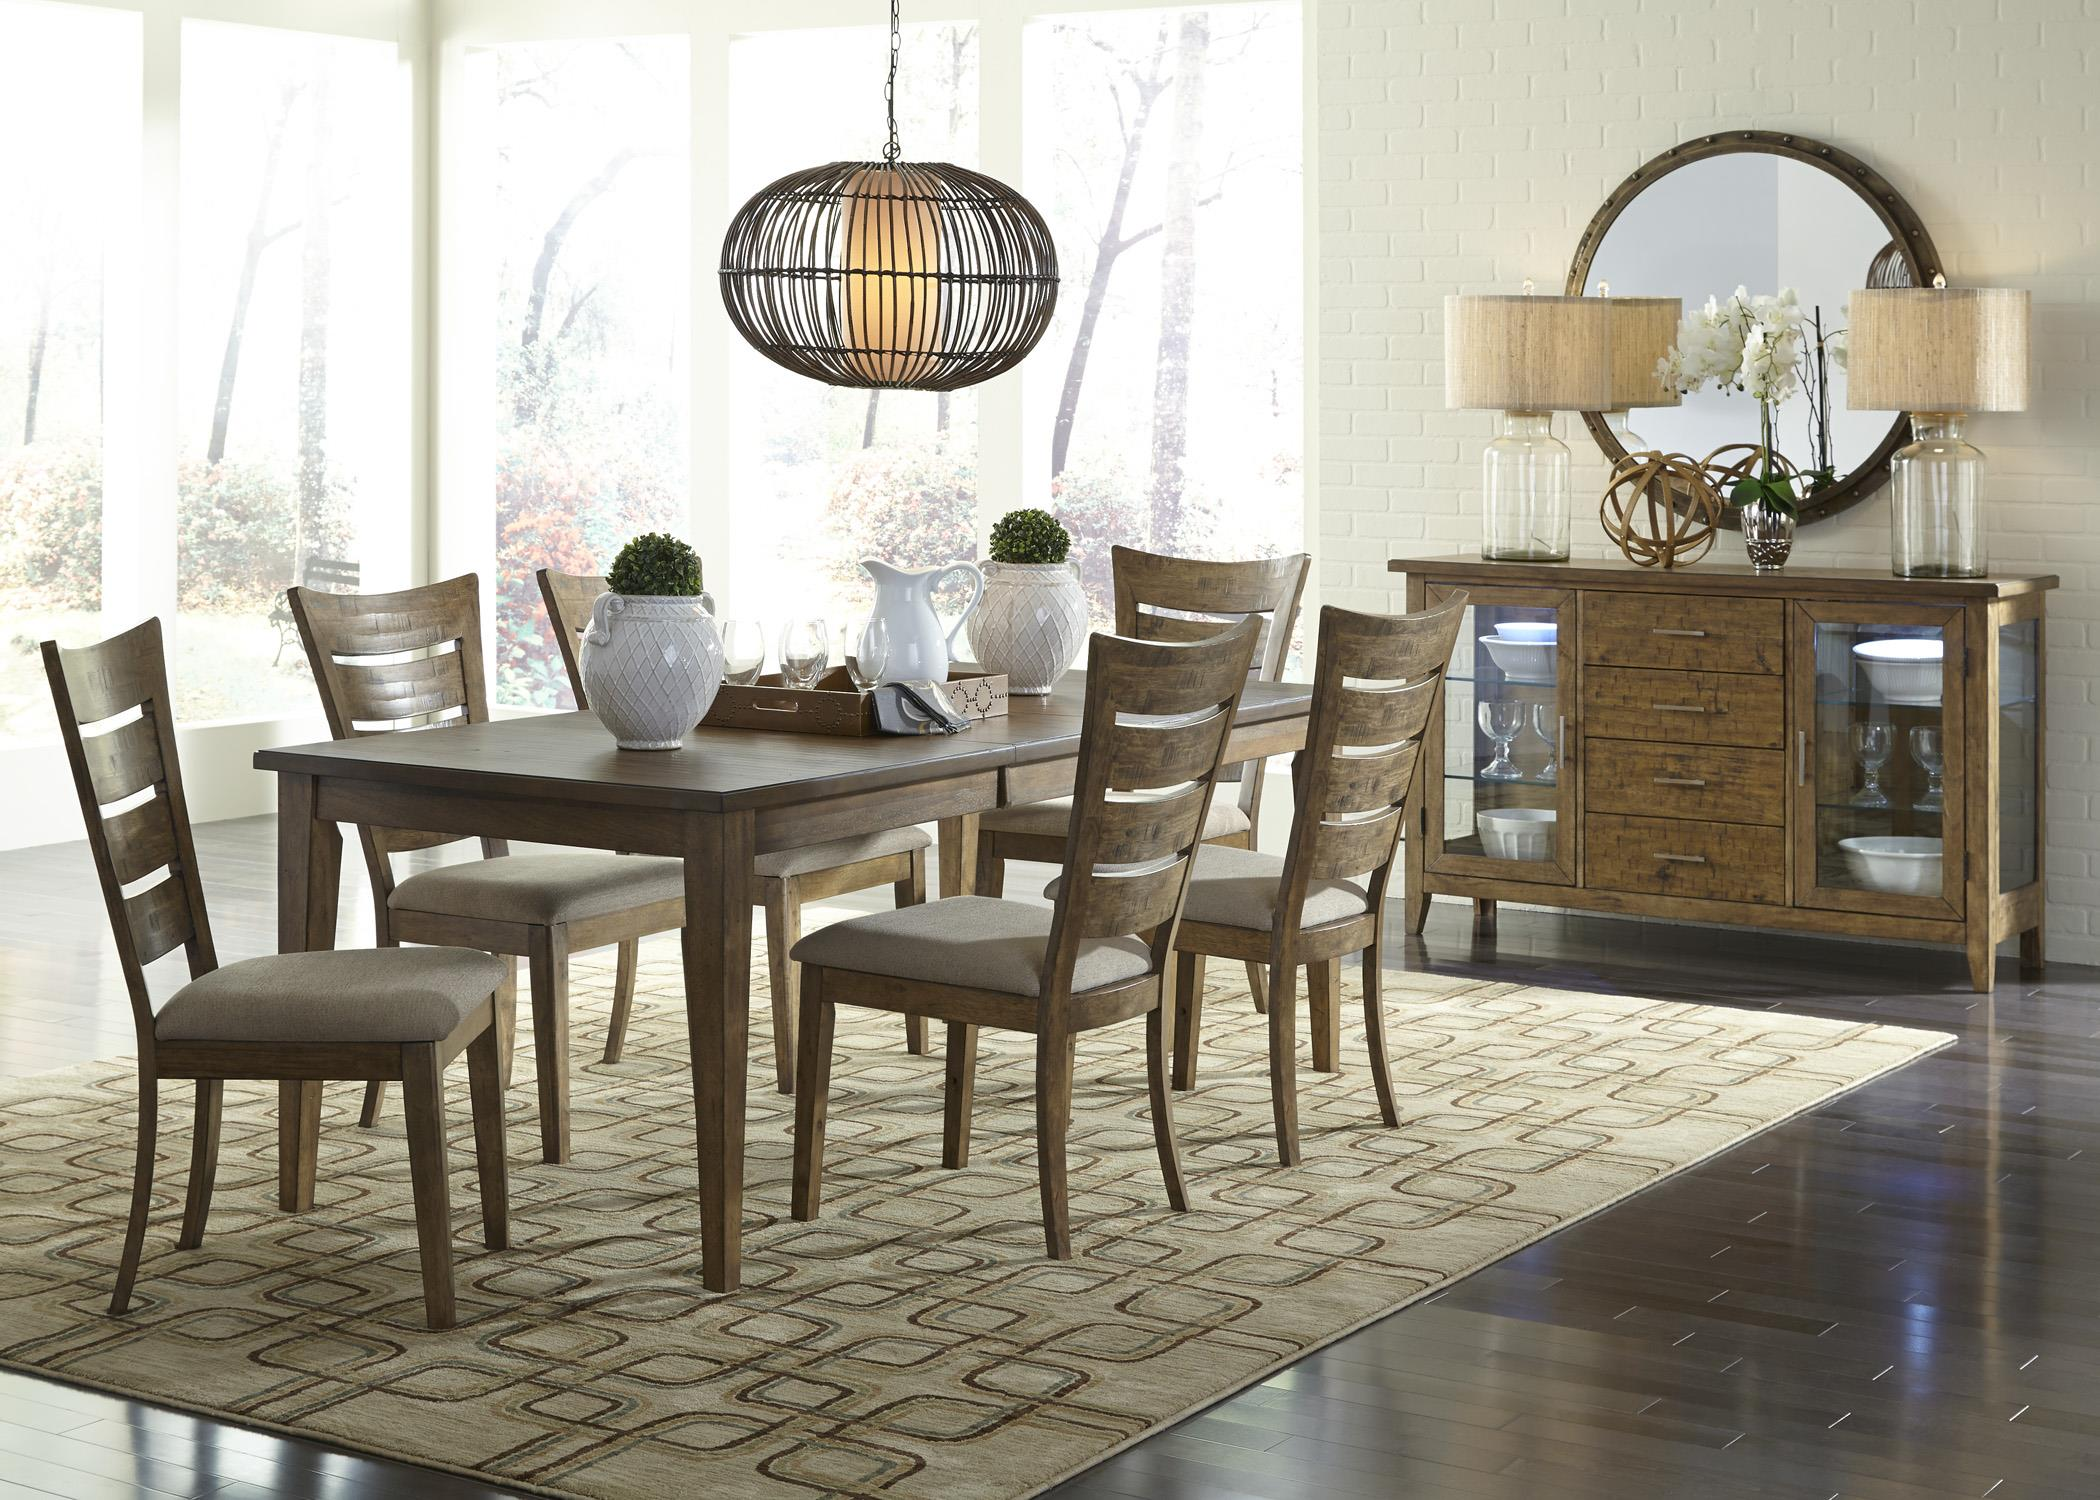 Vendor 5349 pebble creek casual dining room group becker for Casual dining room